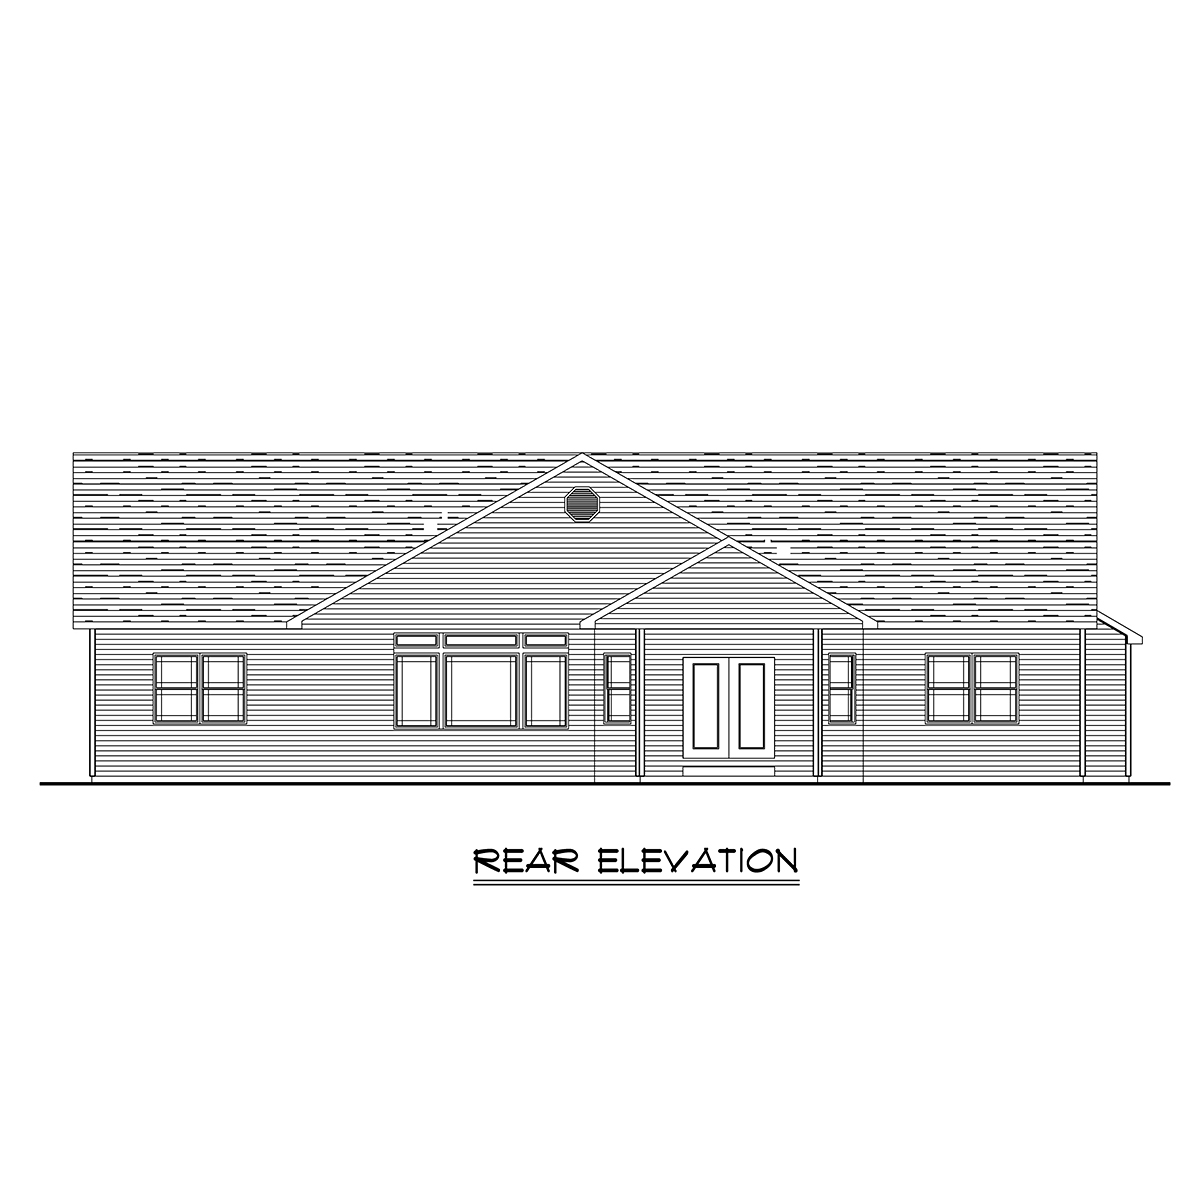 Bungalow, Craftsman, Ranch, Traditional House Plan 51862 with 3 Beds, 3 Baths, 3 Car Garage Rear Elevation